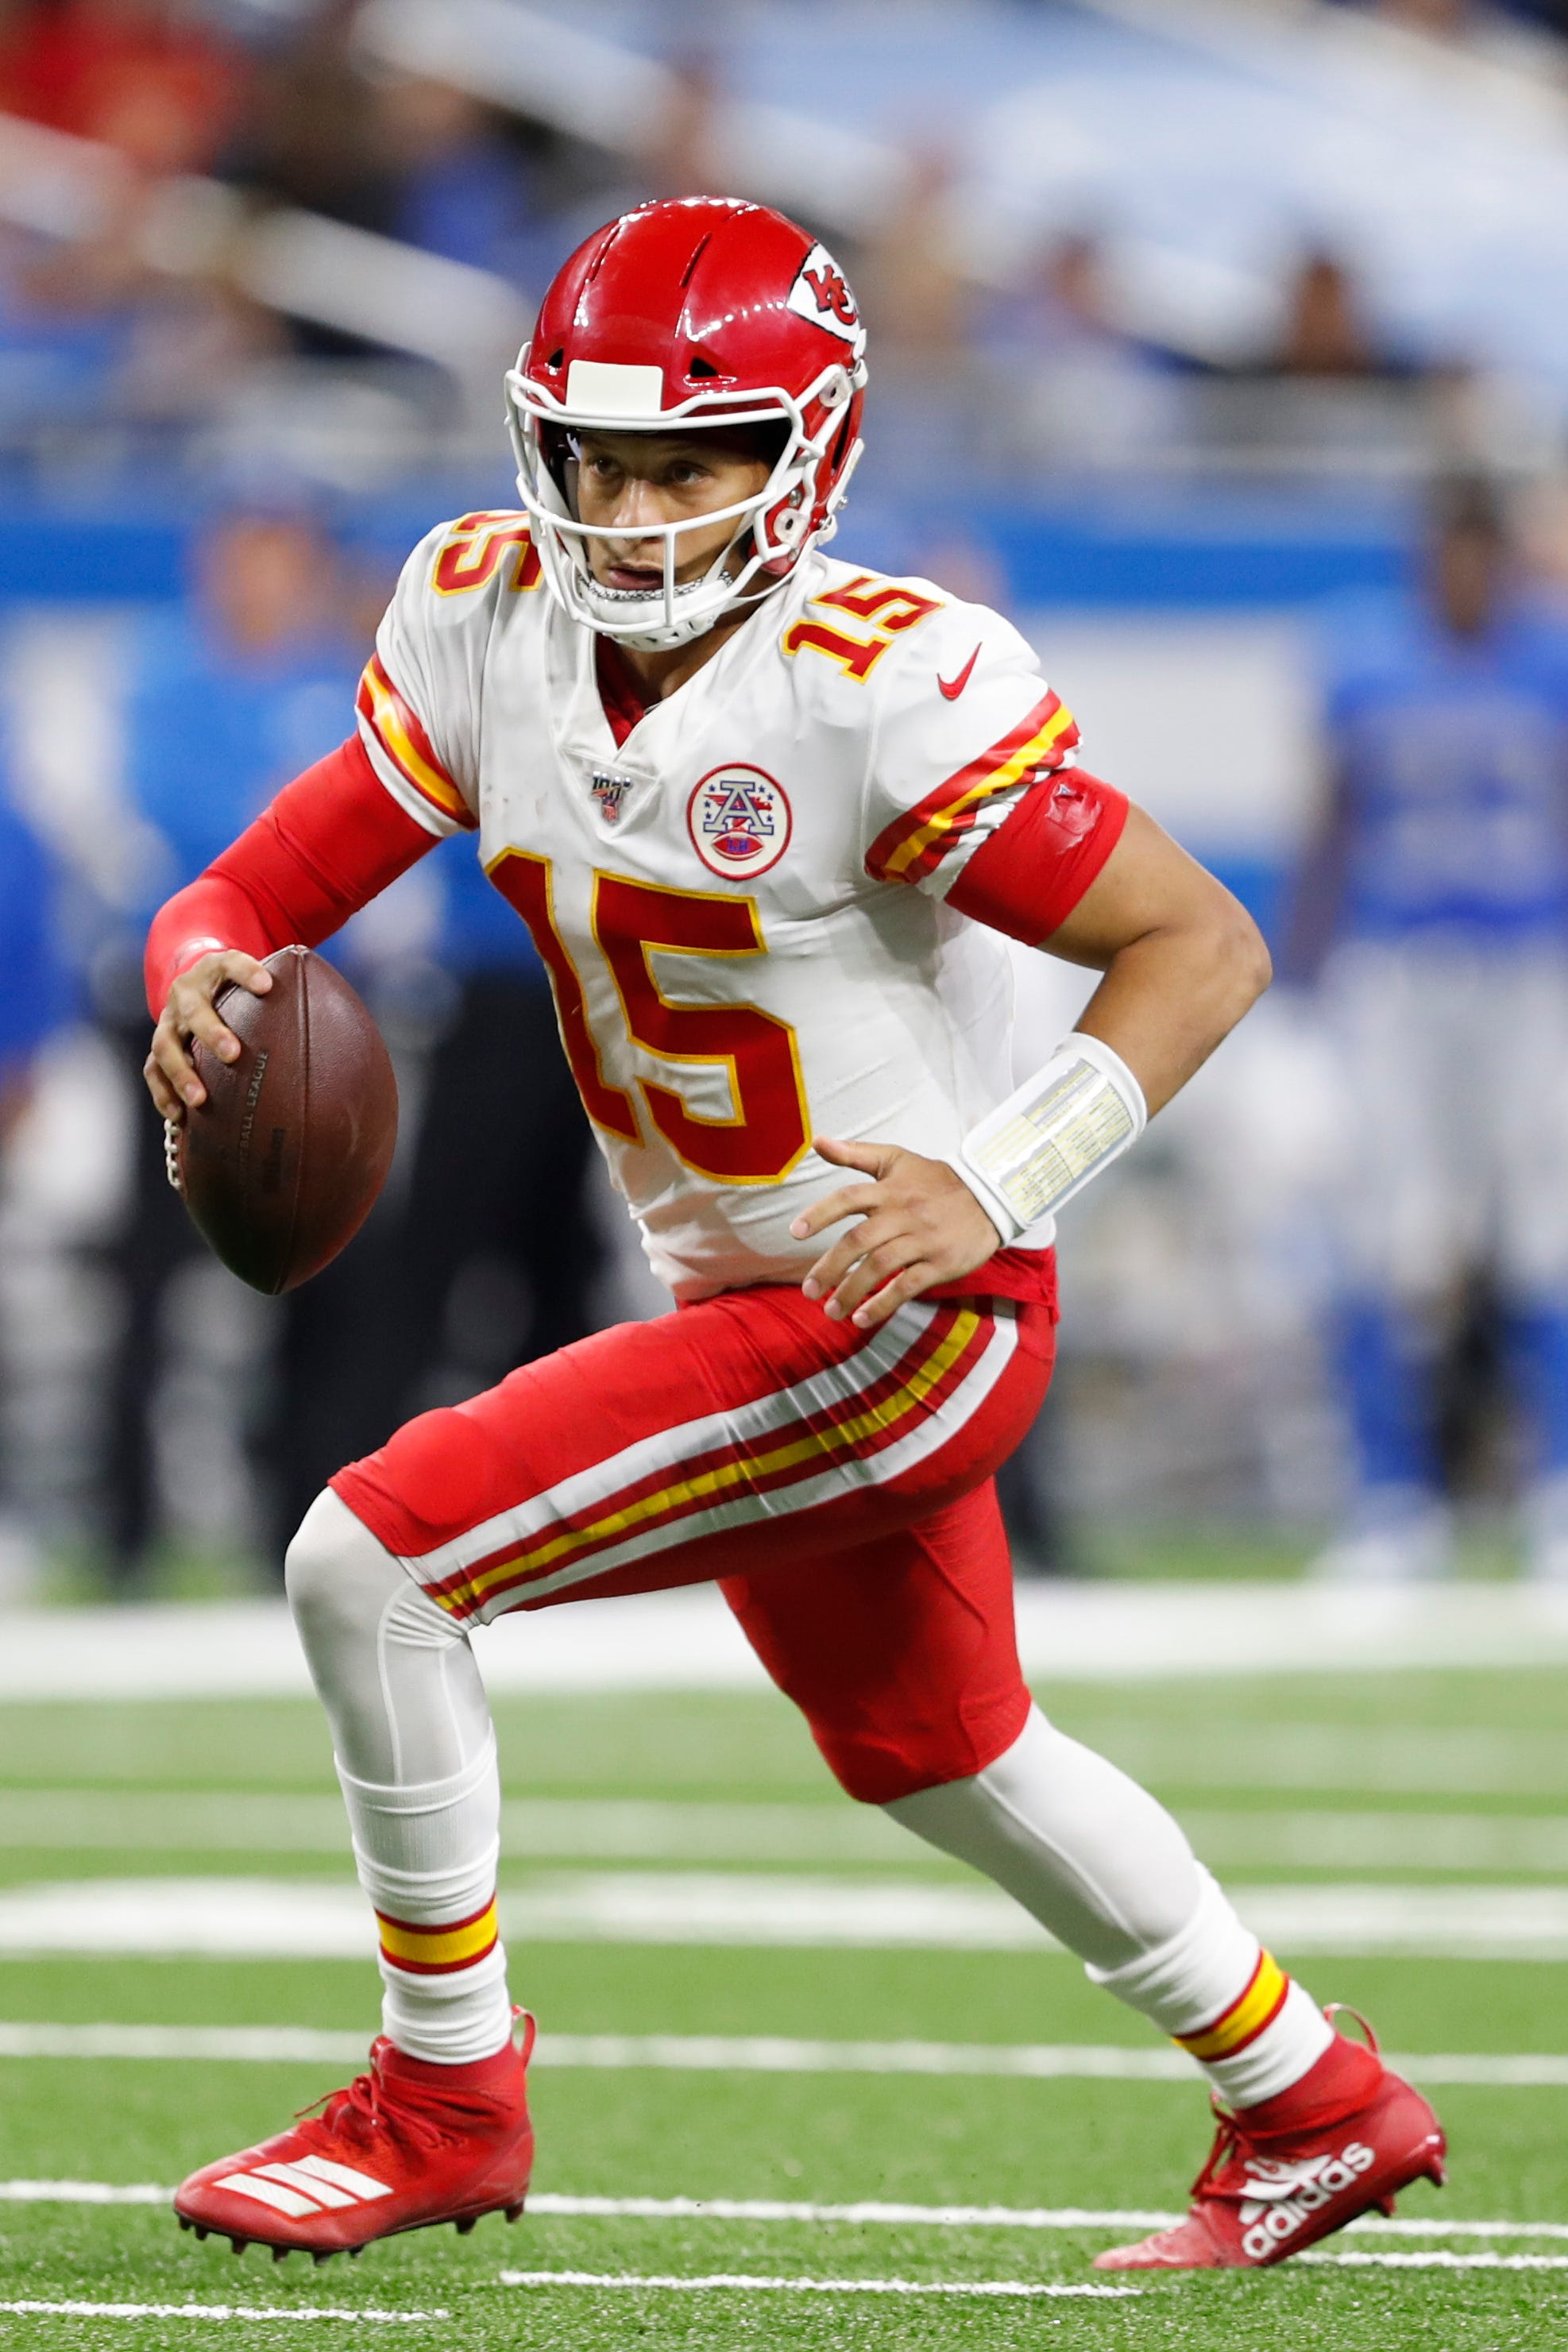 Patrick Mahomes and Aaron Rodgers? Young QBs looking like greats